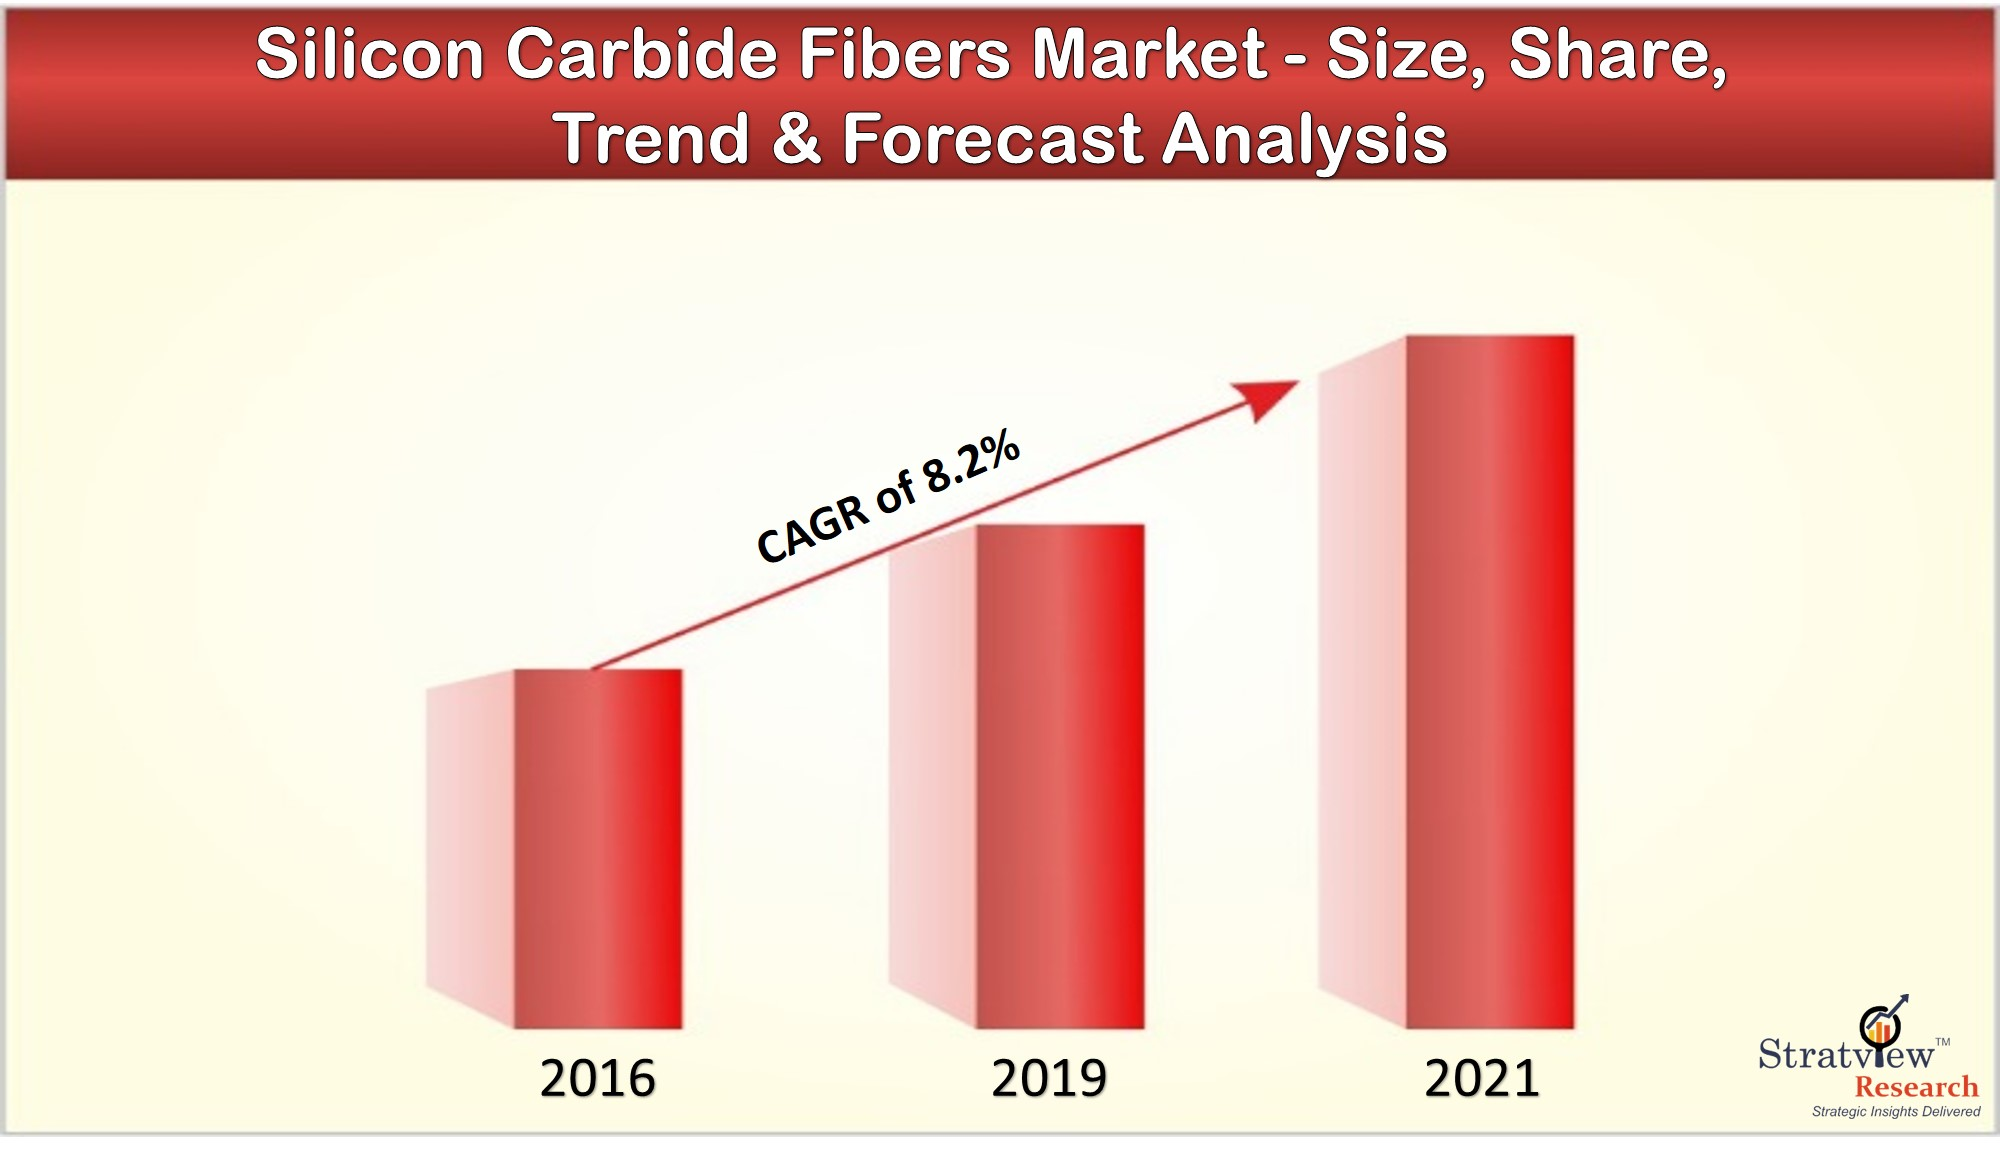 The changing dynamics in Silicon Carbide Fibers Market with covid-19 impact assessment